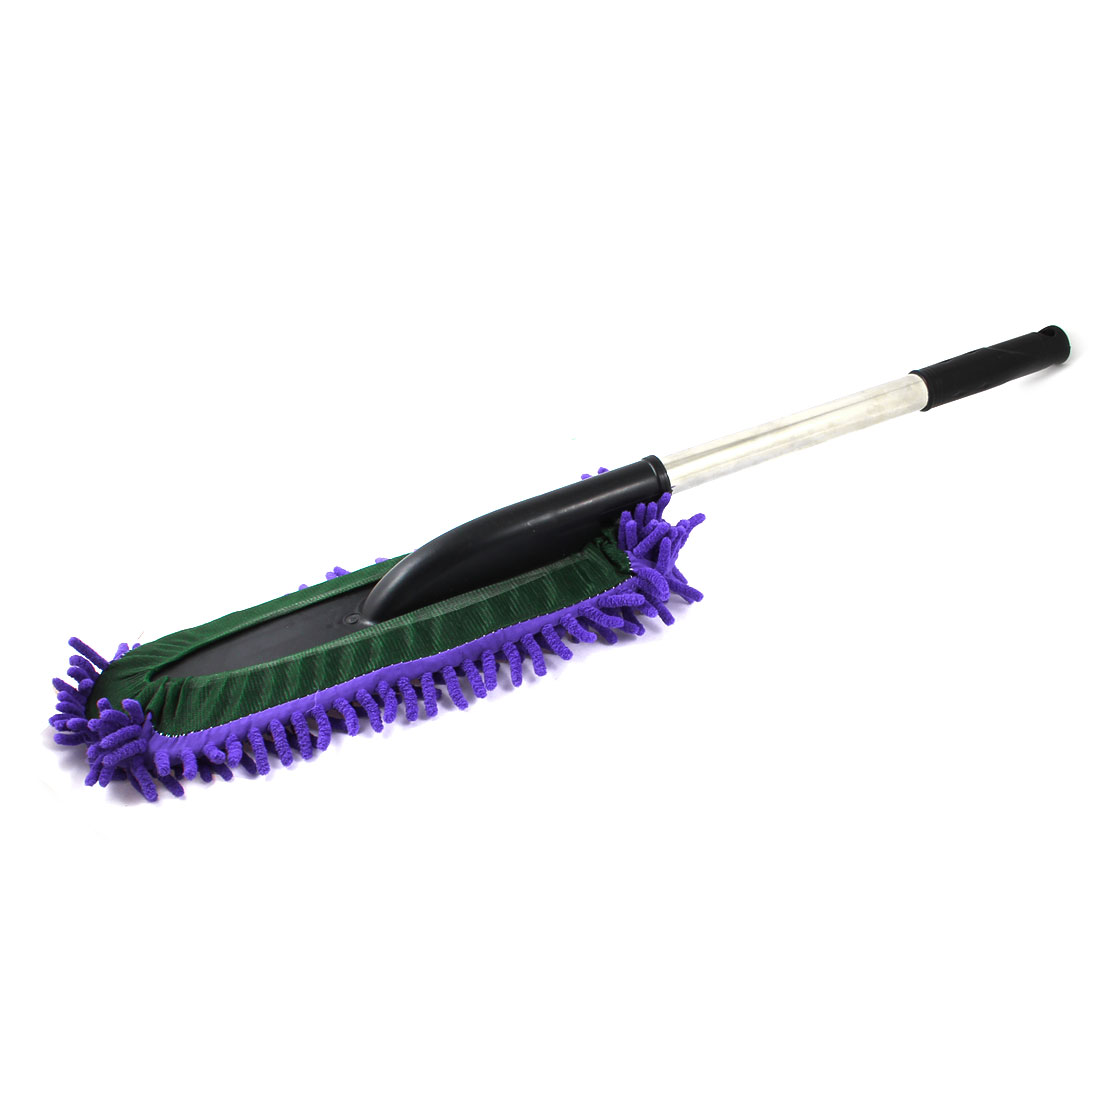 "Foam Coated Plastic Handle Handgrip Purple Microfiber Chenille 27.5"" Cleaning Dirt Wash Dust Brush Duster for Vehicle Autos Cars"